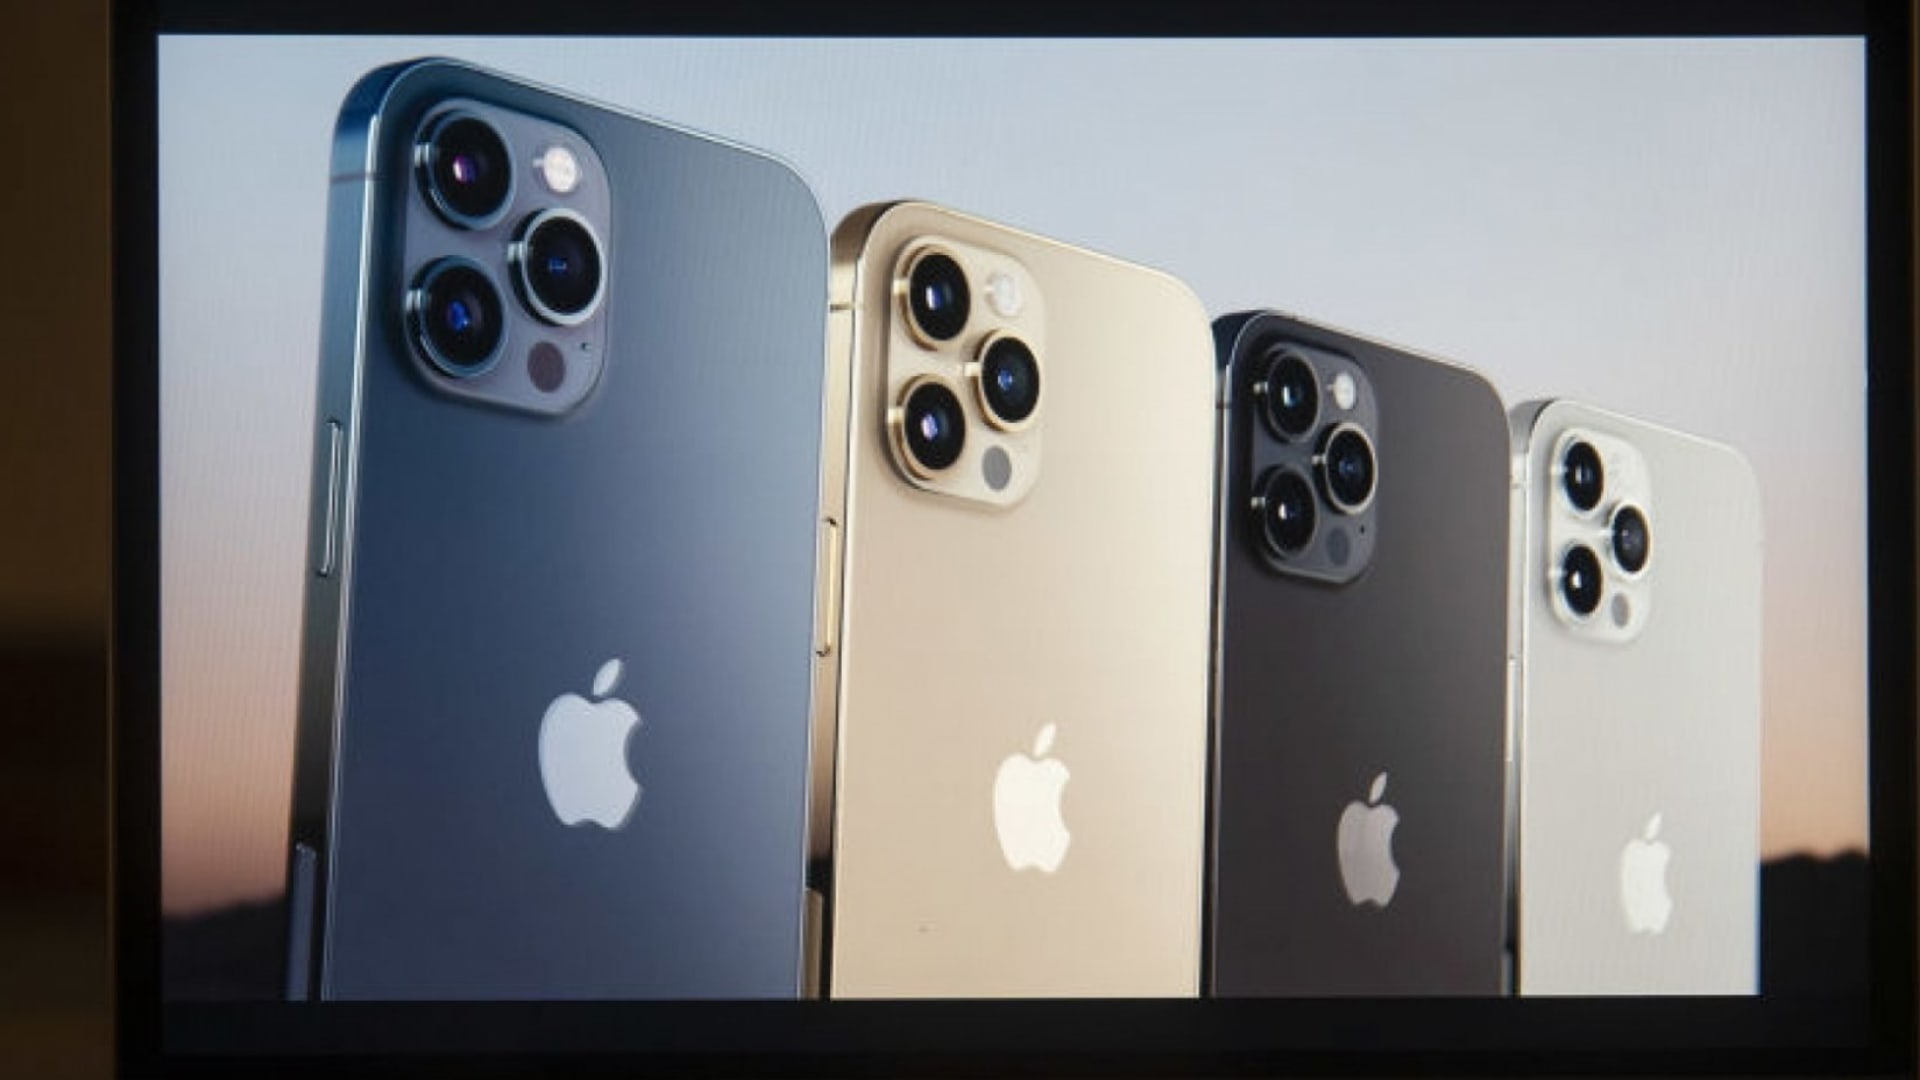 If You Plan to Preorder an iPhone 12 Today, This Is the 1 to Get